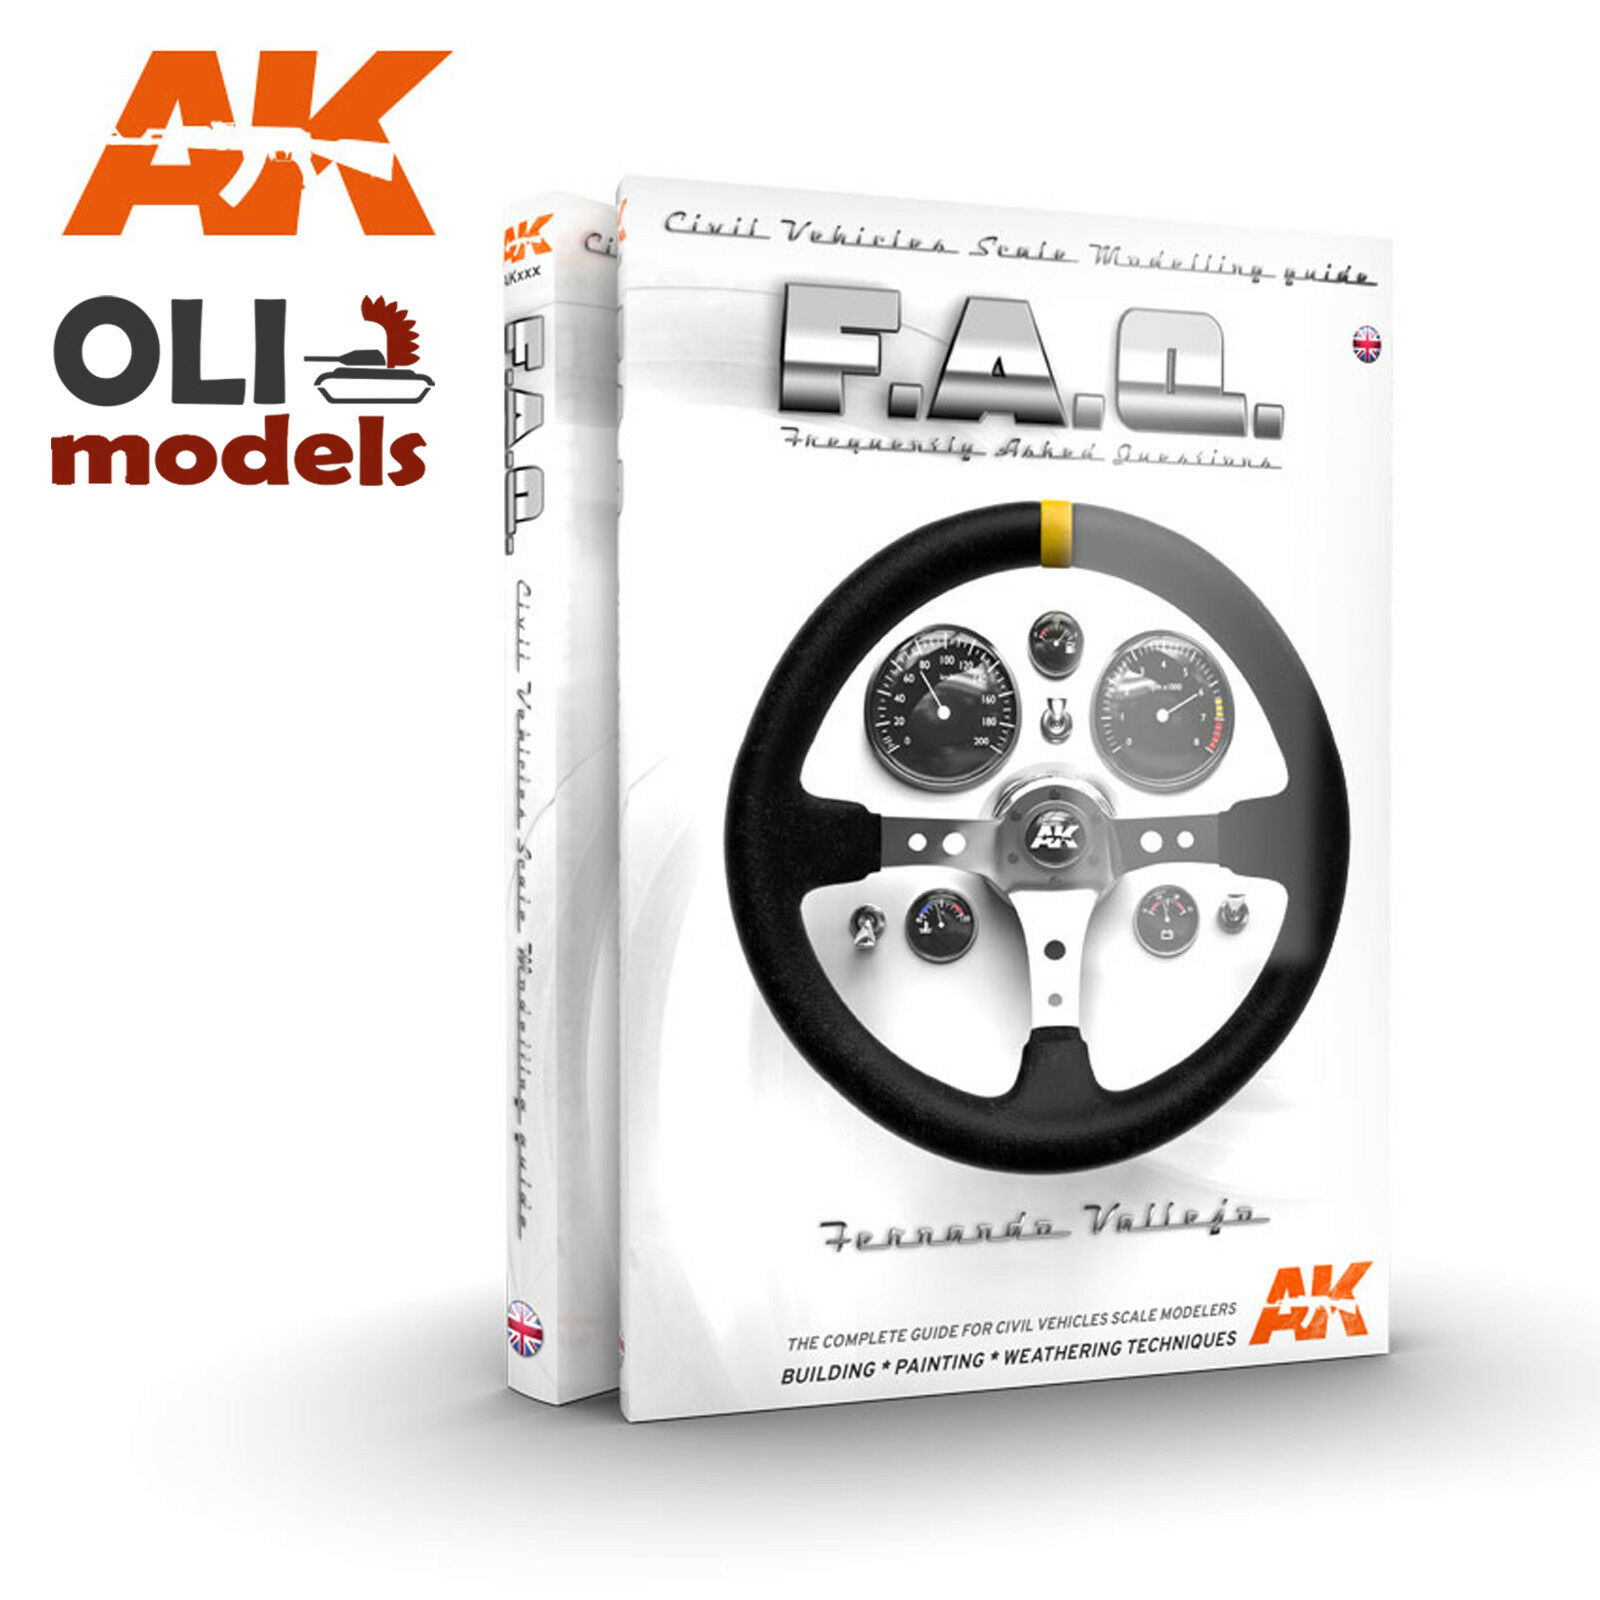 FAQ CIVIL VEHICLES Scale Modelling Guide F.A.Q. - AK Interactive 282